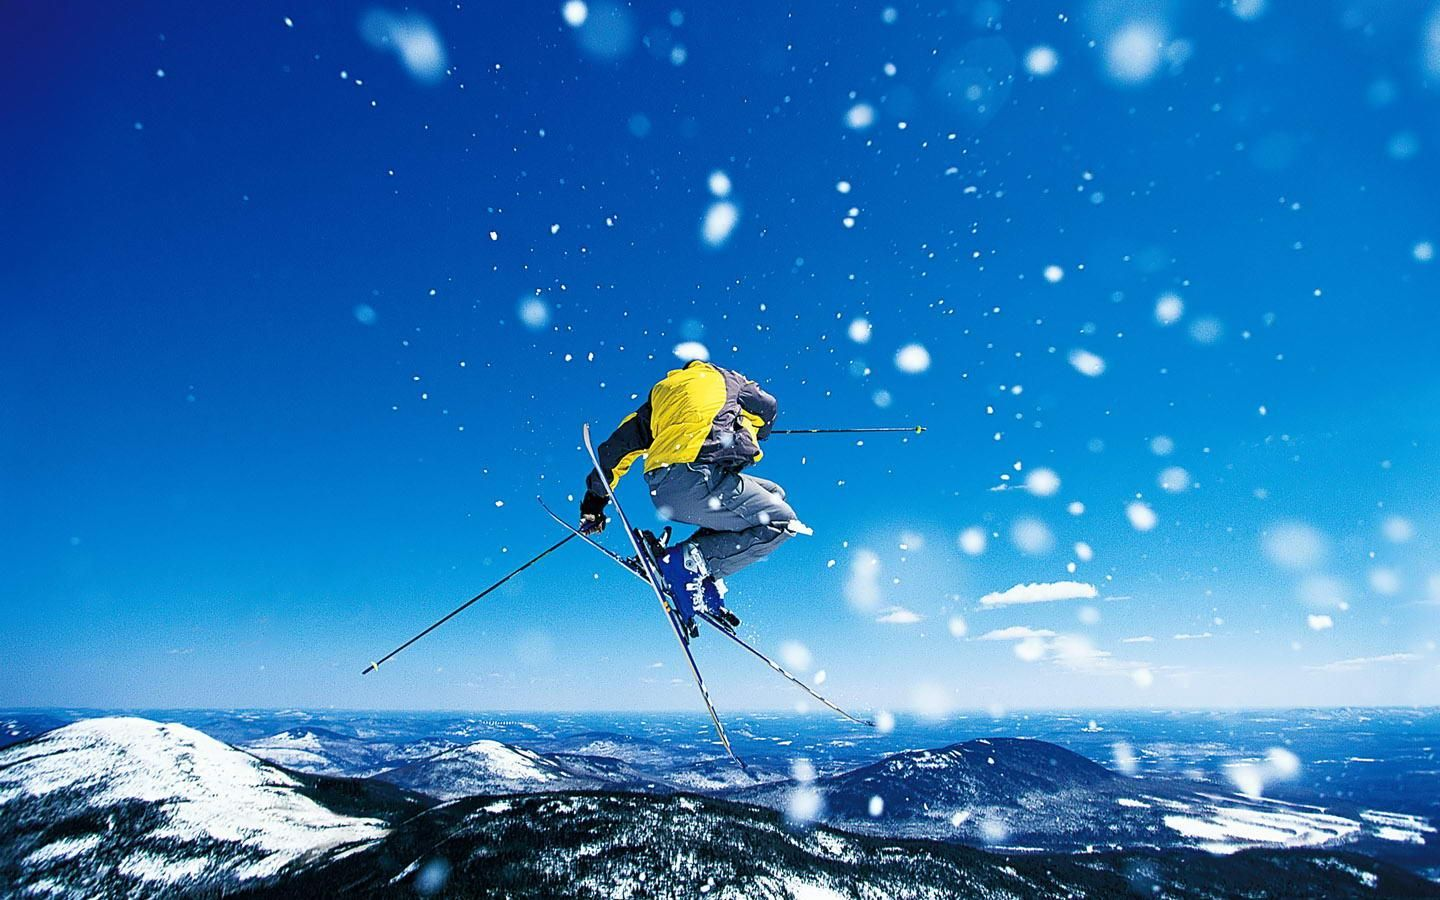 Extreme Sports Alpine Skiing Some of winter's finest